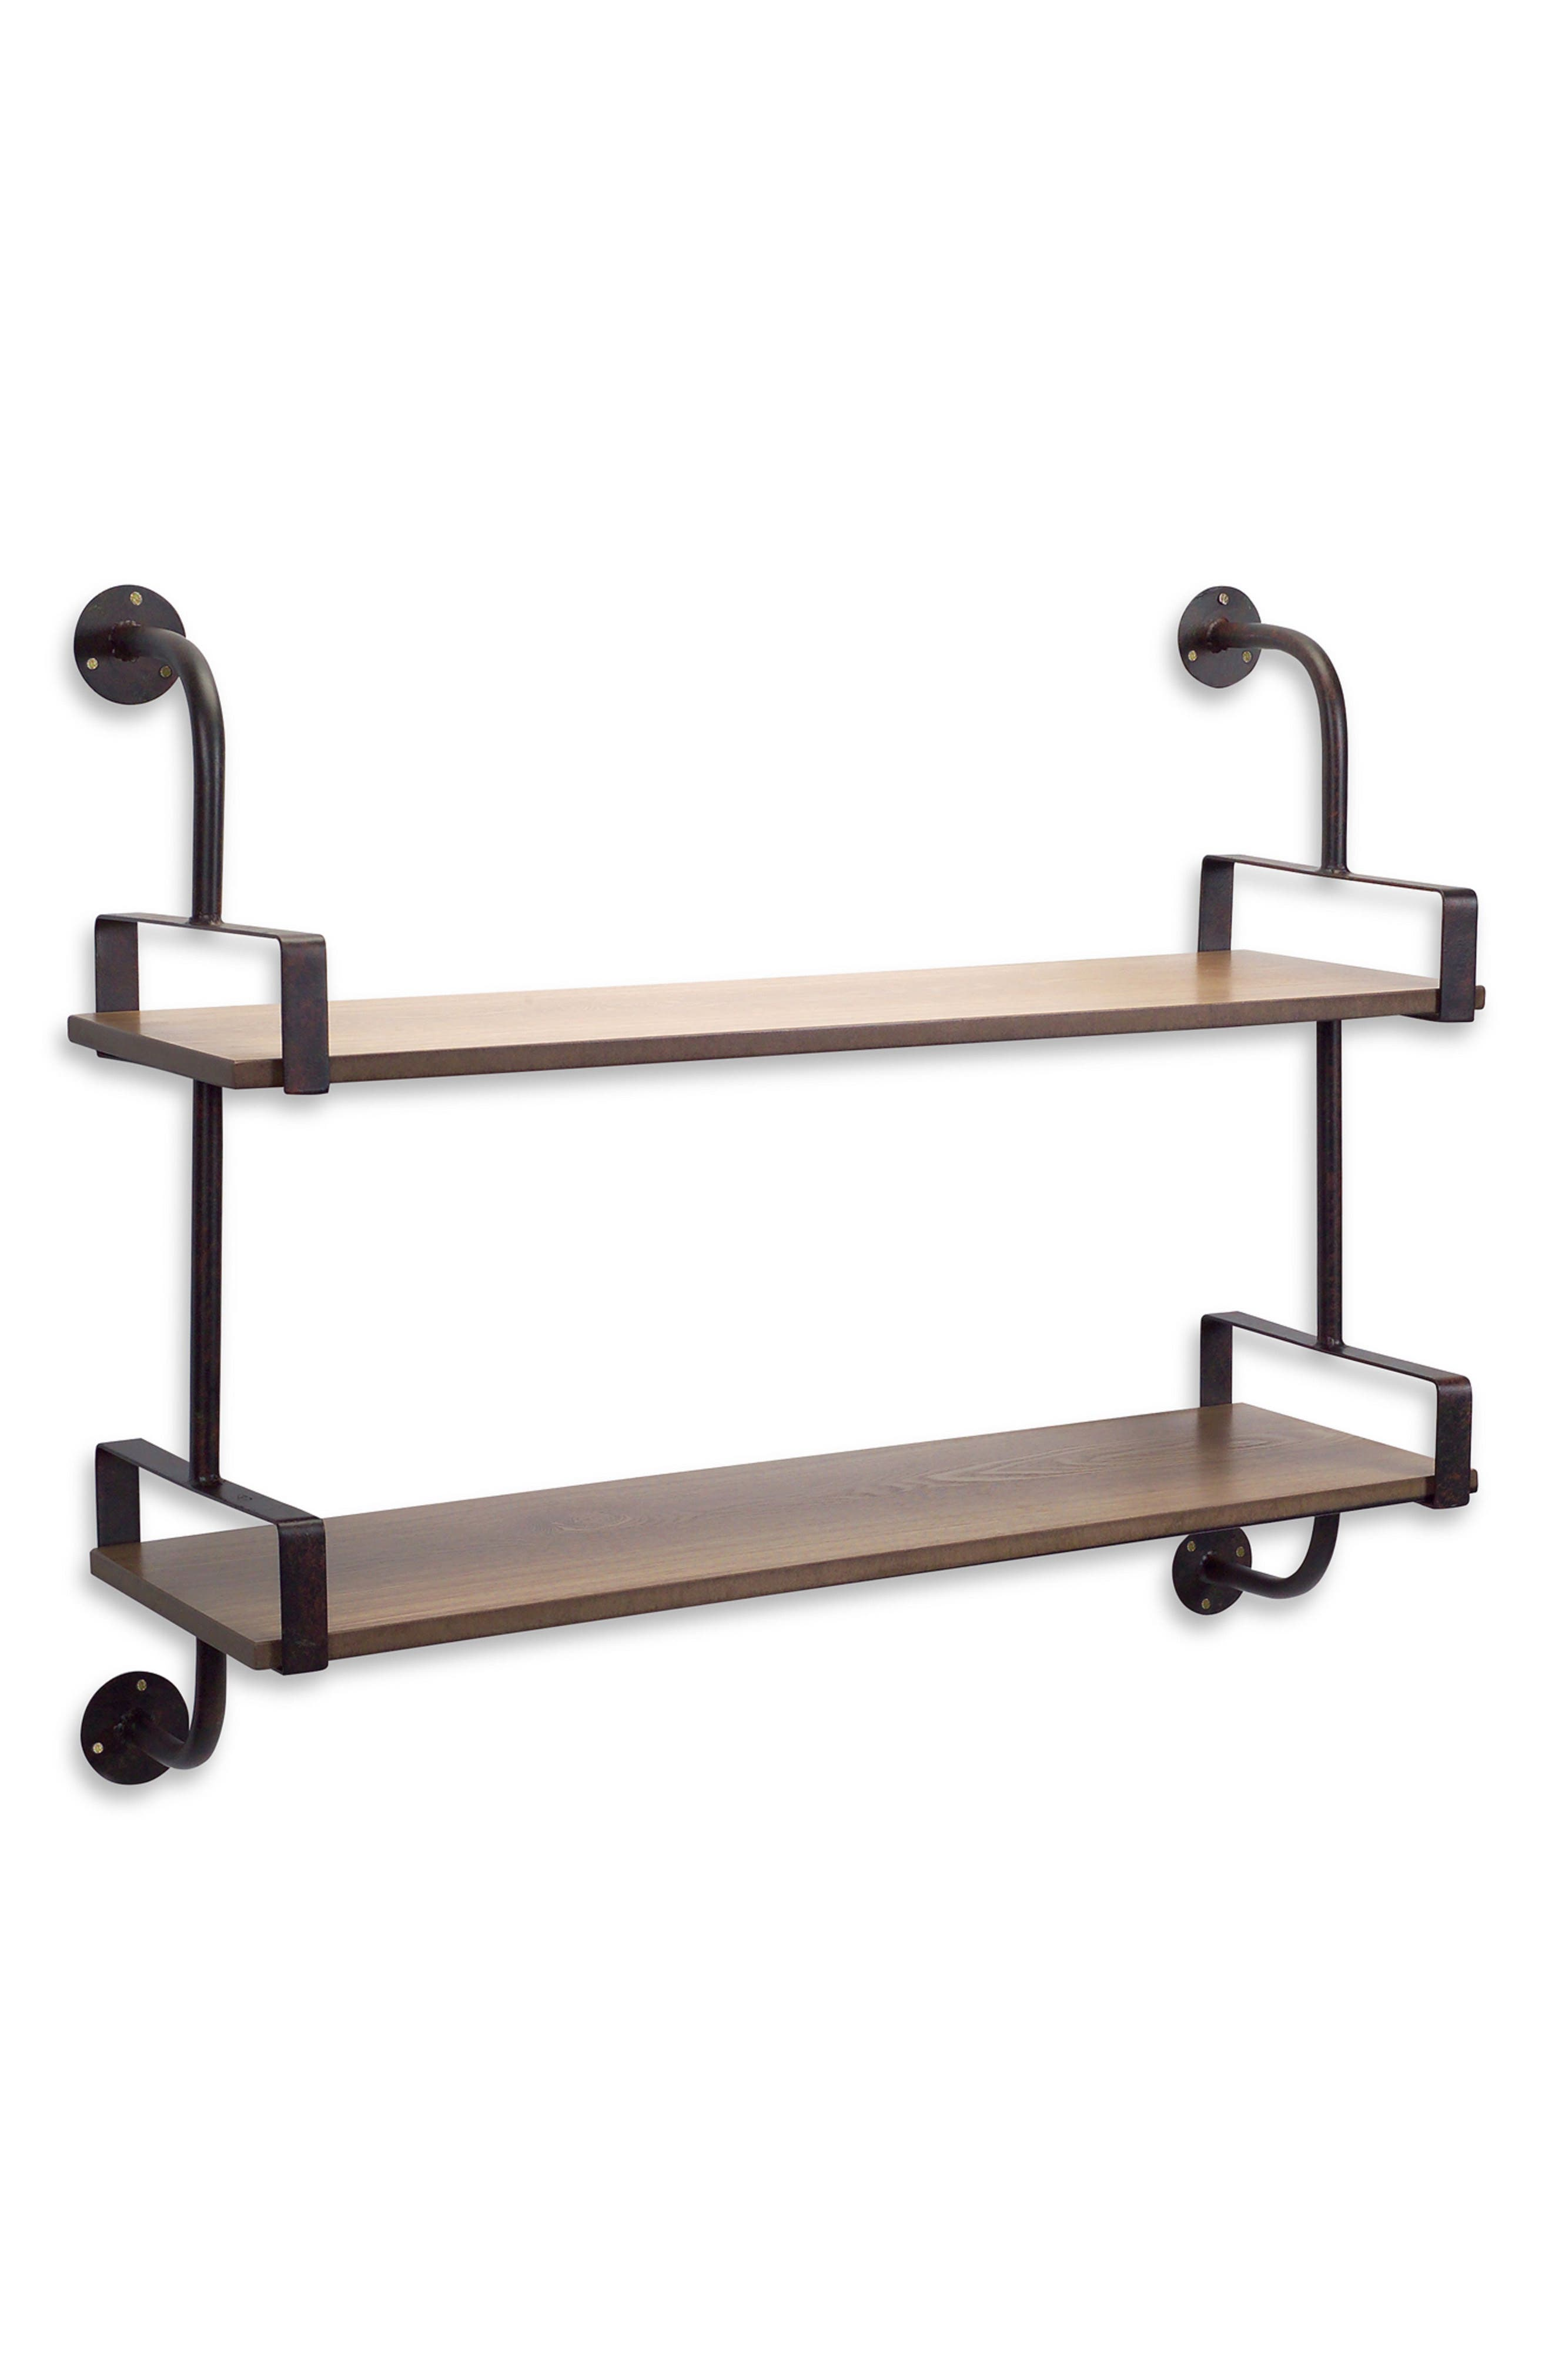 Melrose Gifts Double Shelf Wall Rack